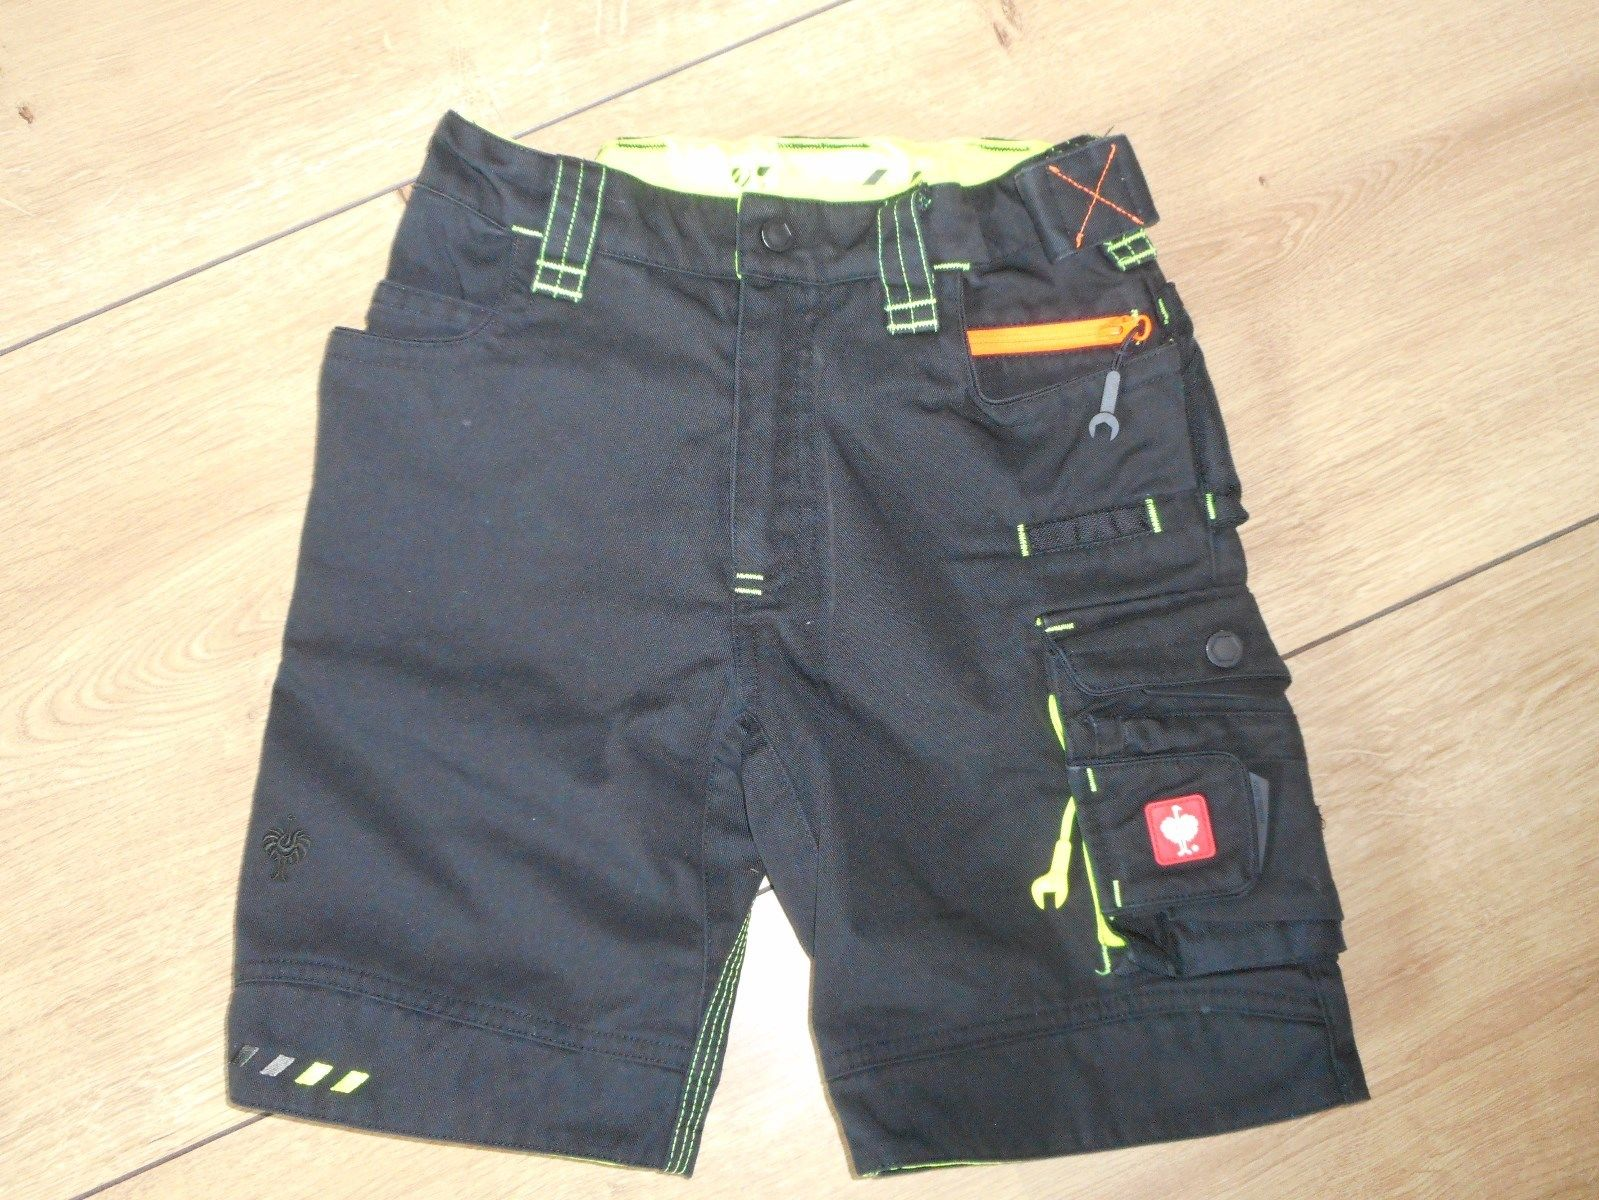 Engelbert Strauss Hose Short e.s. emotion 2020 schwarz neon Gr. 122 128 TOP